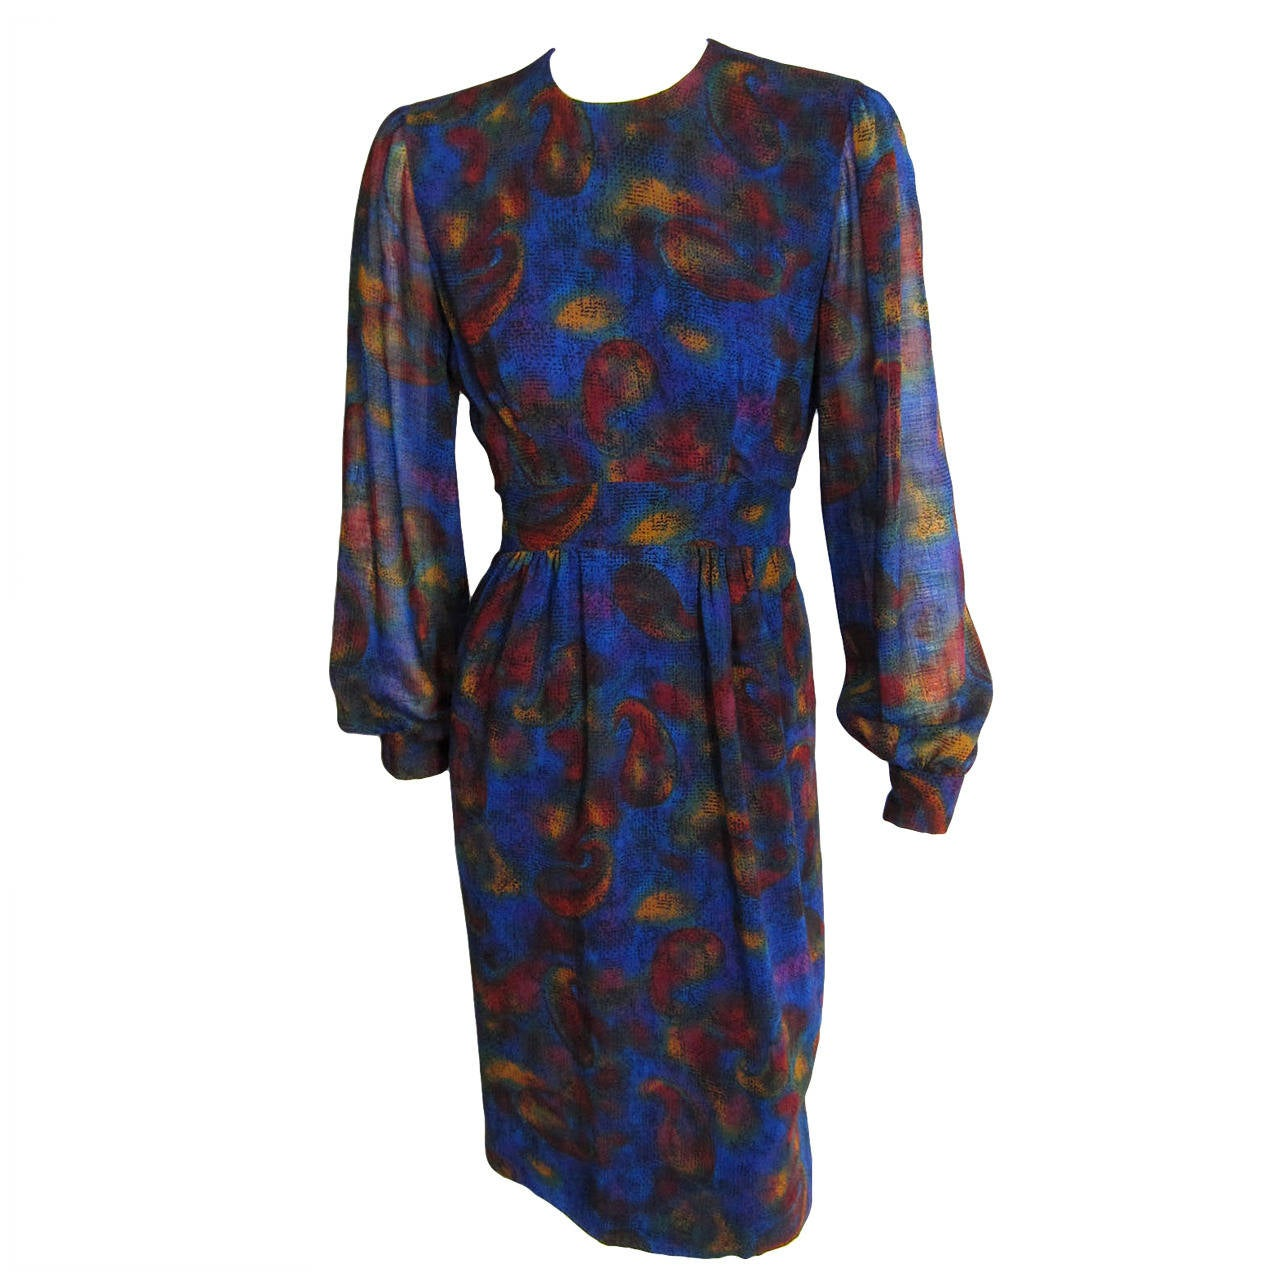 PAULINE TRIGERE Paisley Print Cocktail Dress For Sale